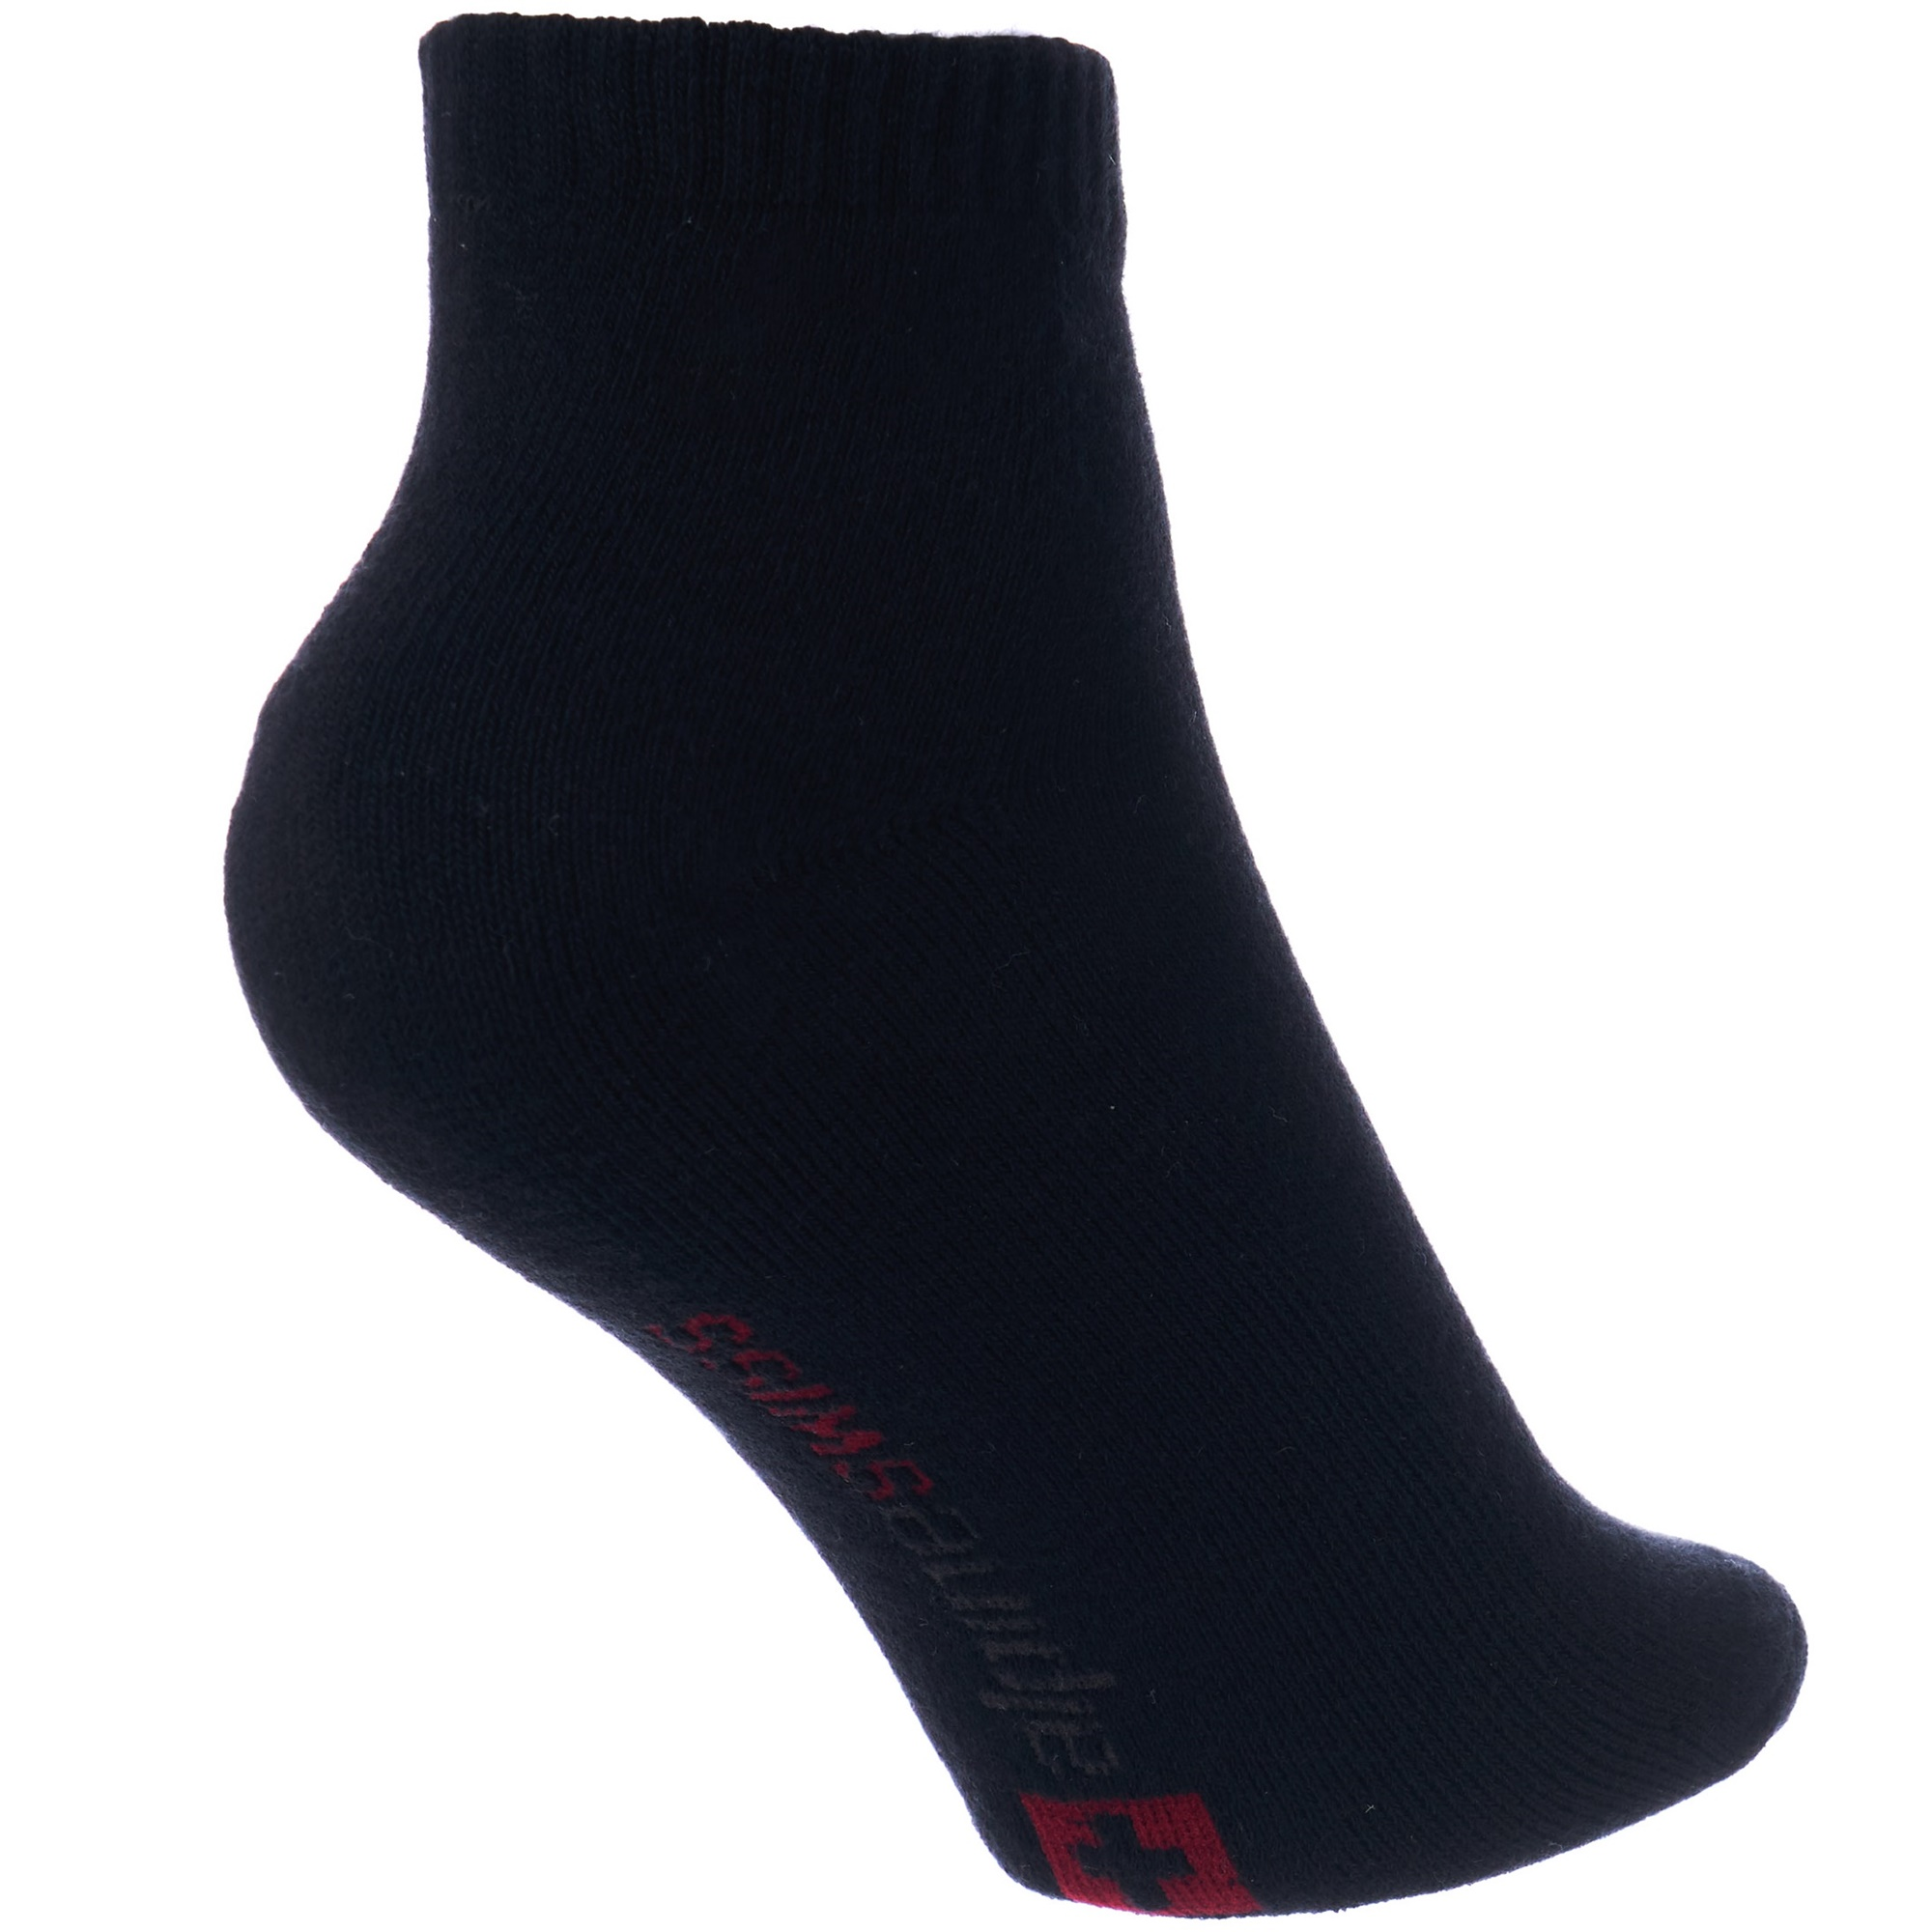 Alpine-Swiss-Mens-8-Pack-Ankle-Socks-Low-Cut-Cotton-Athletic-Sock-Shoe-Size-6-12 thumbnail 22